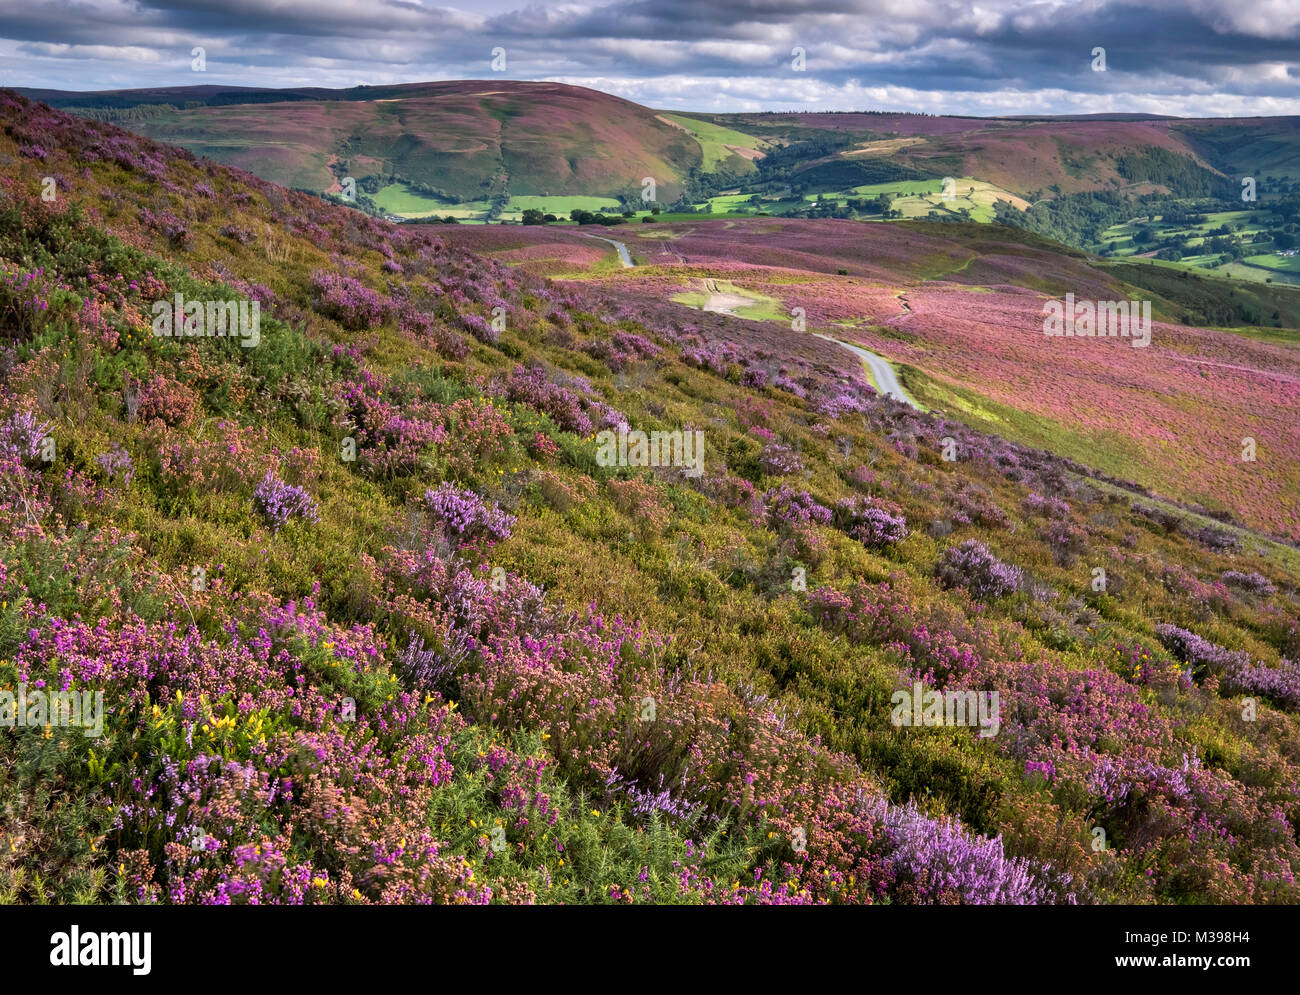 Llantysilio Mountain looking to Moel Fferna in summer, near Llangollen, Denbighshire, North Wales, UK - Stock Image